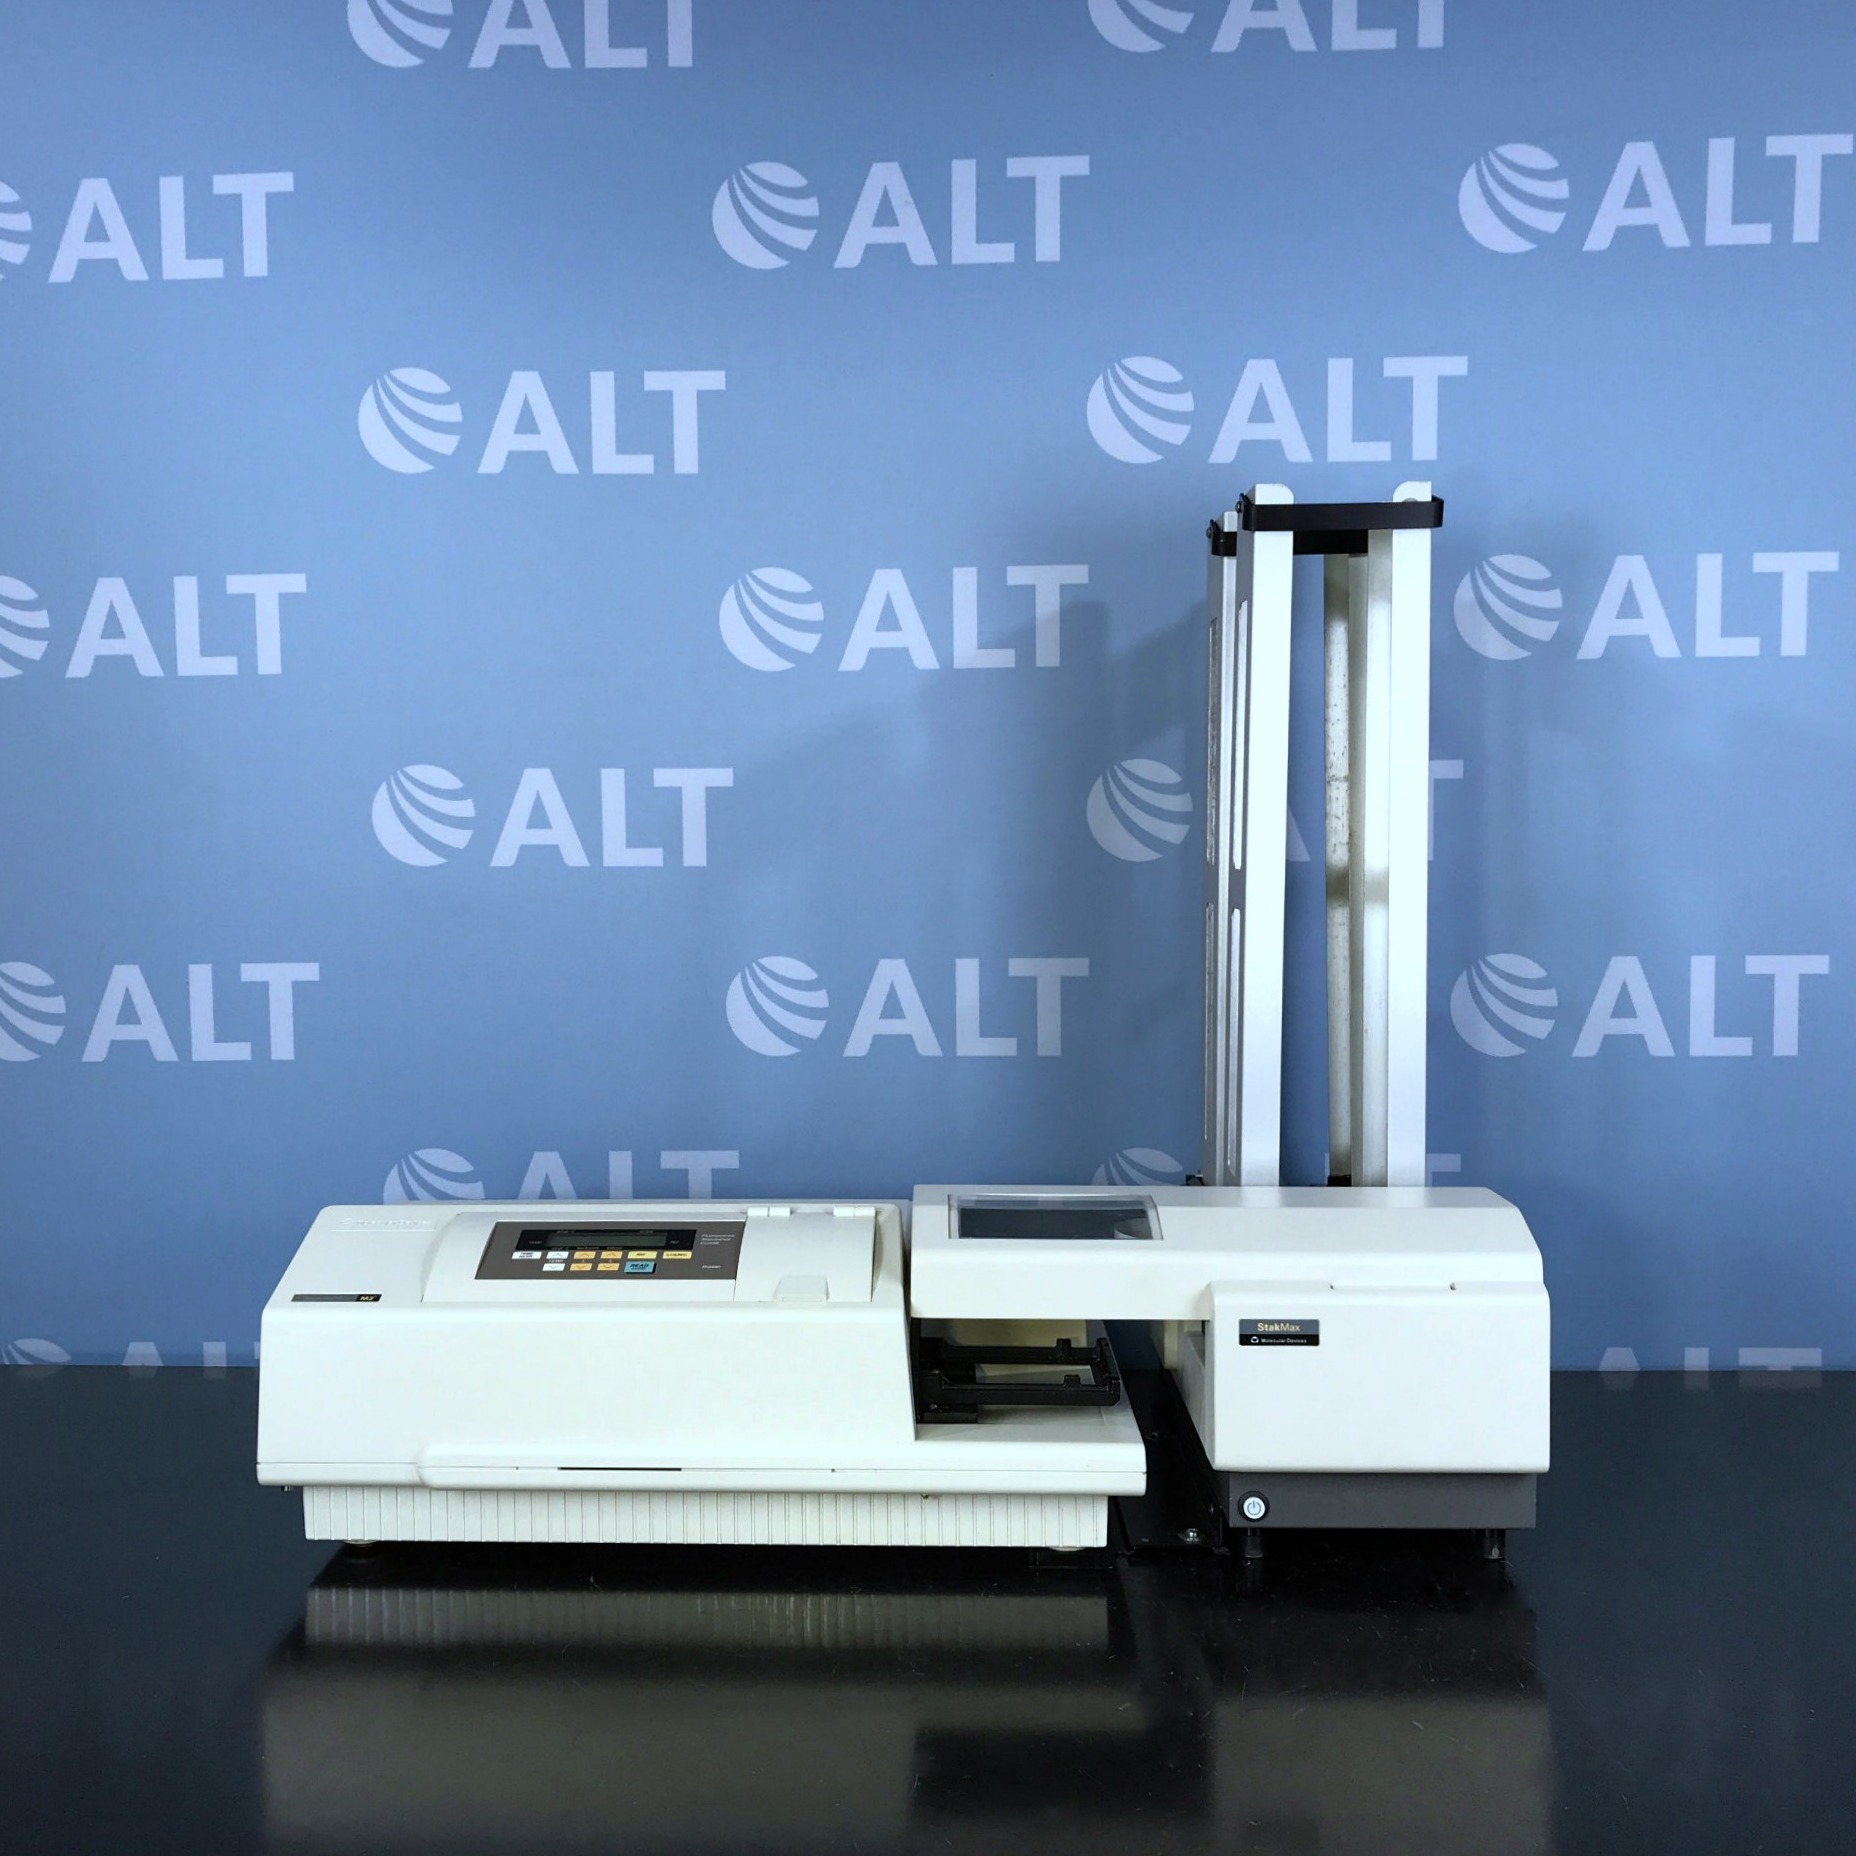 Molecular Devices Spectramax M2e Multimode Microplate Reader with StakMax Image